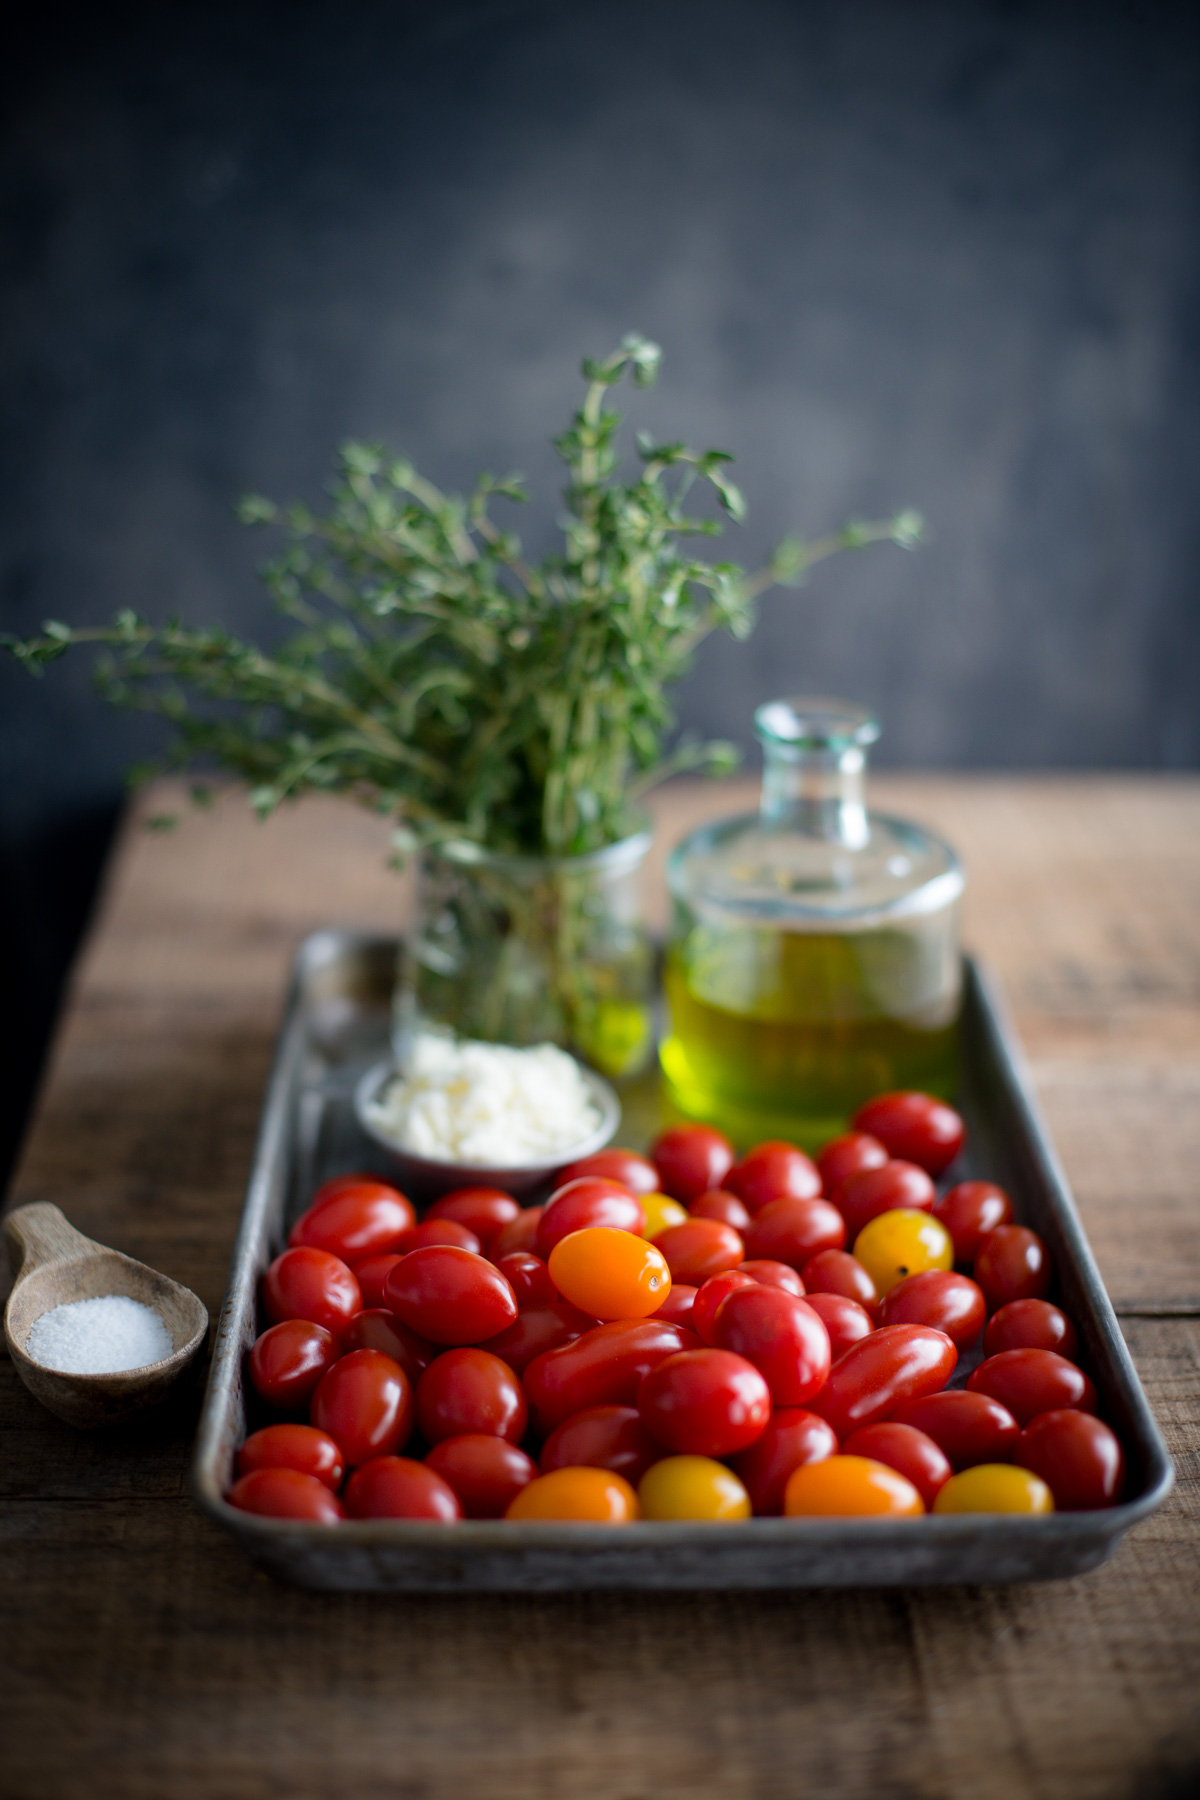 Ingredients for roasted tomatoes set out on a metal tray - tomatoes, olive oil, fresh thyme, feta, and kosher salt.